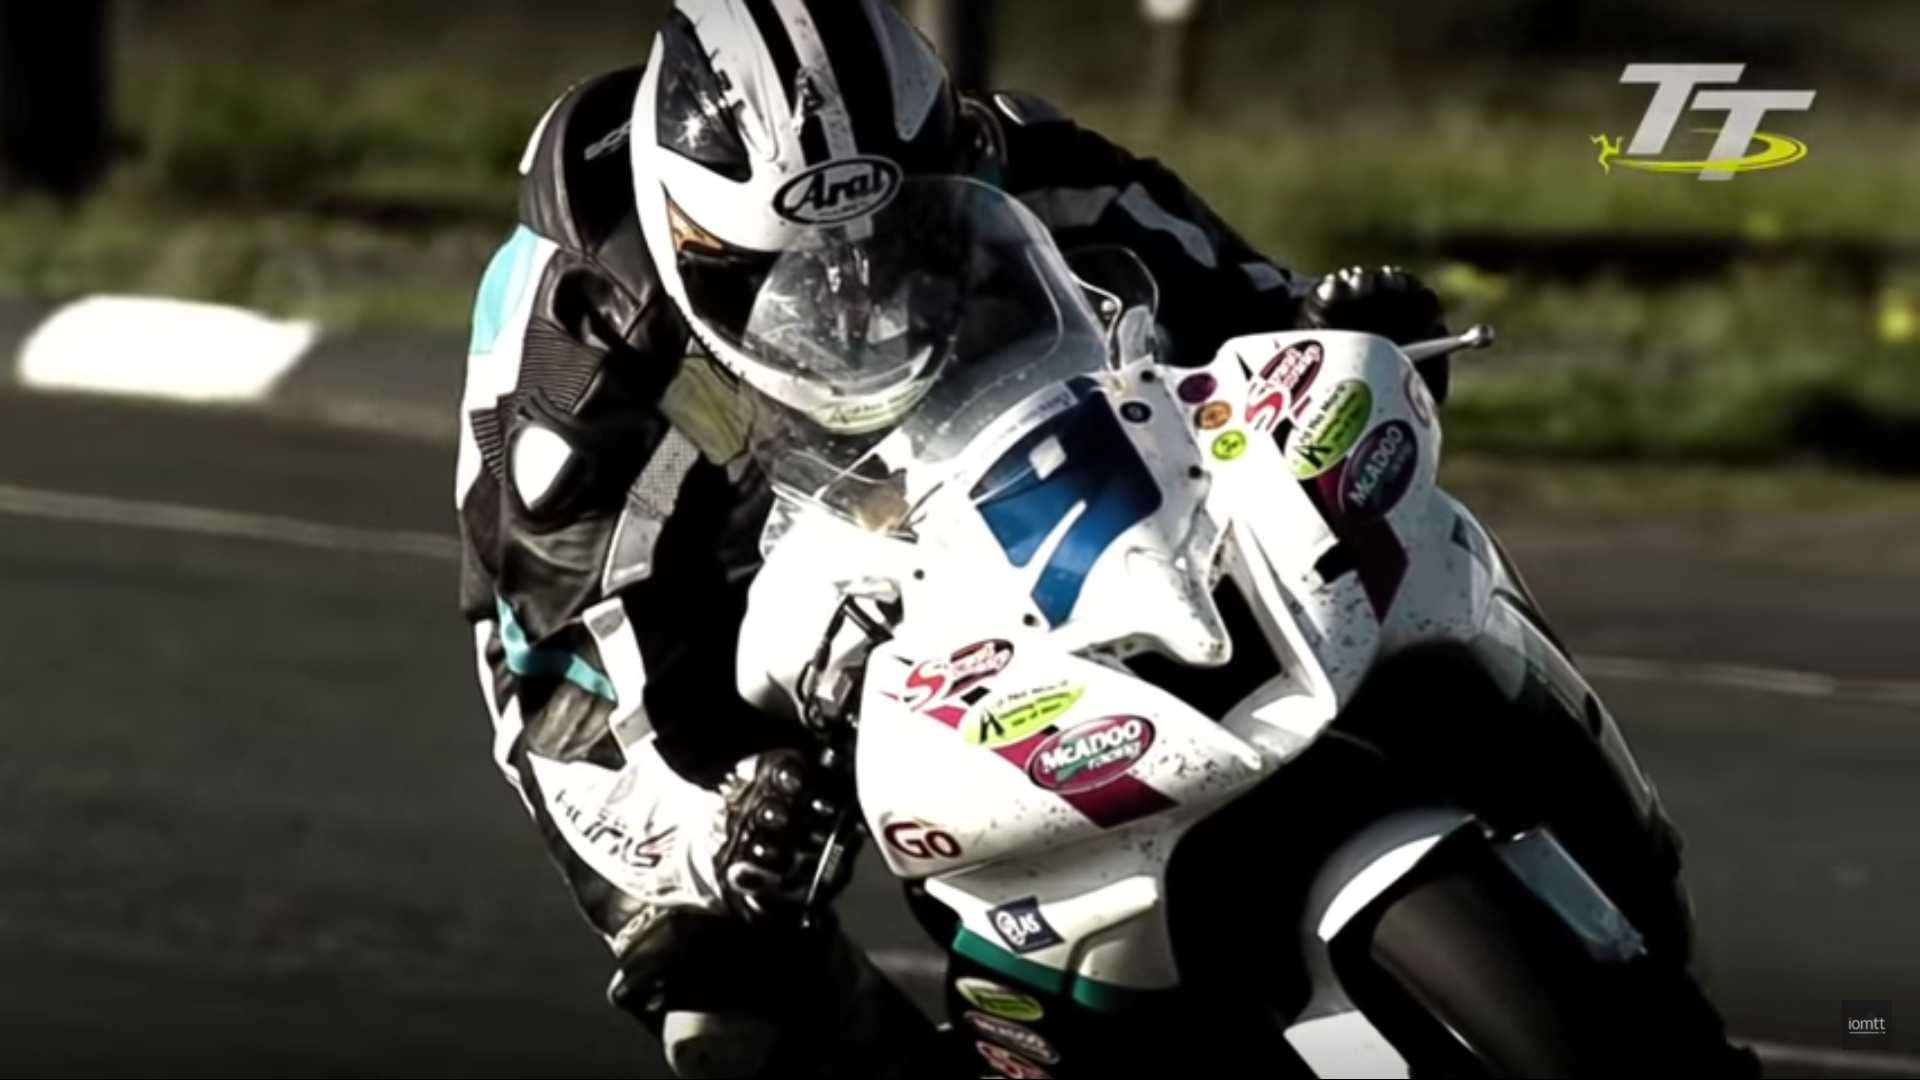 19-Time IOMTT Champ Michael Dunlop Is Racing The 2021 ...